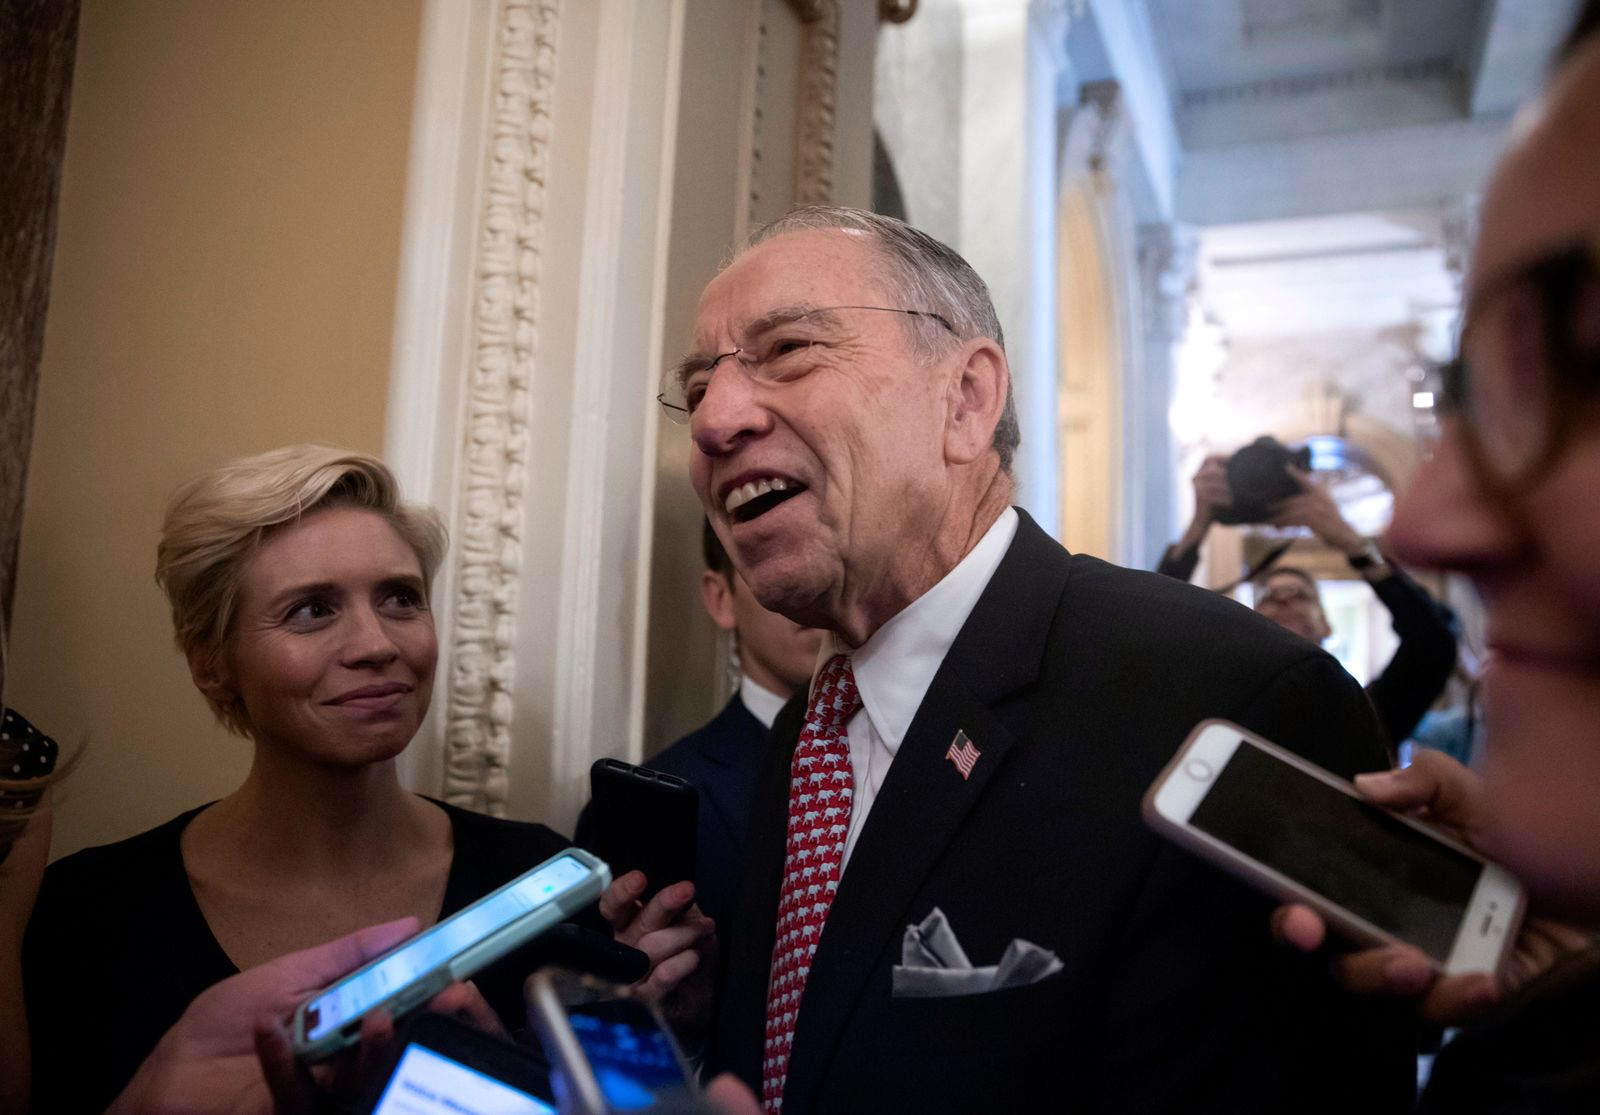 Senate Judiciary Committee Chairman Chuck Grassley, R-Iowa, speaks to reporters as he leaves the chamber following a procedural vote.{ } (AP Photo/J. Scott Applewhite)